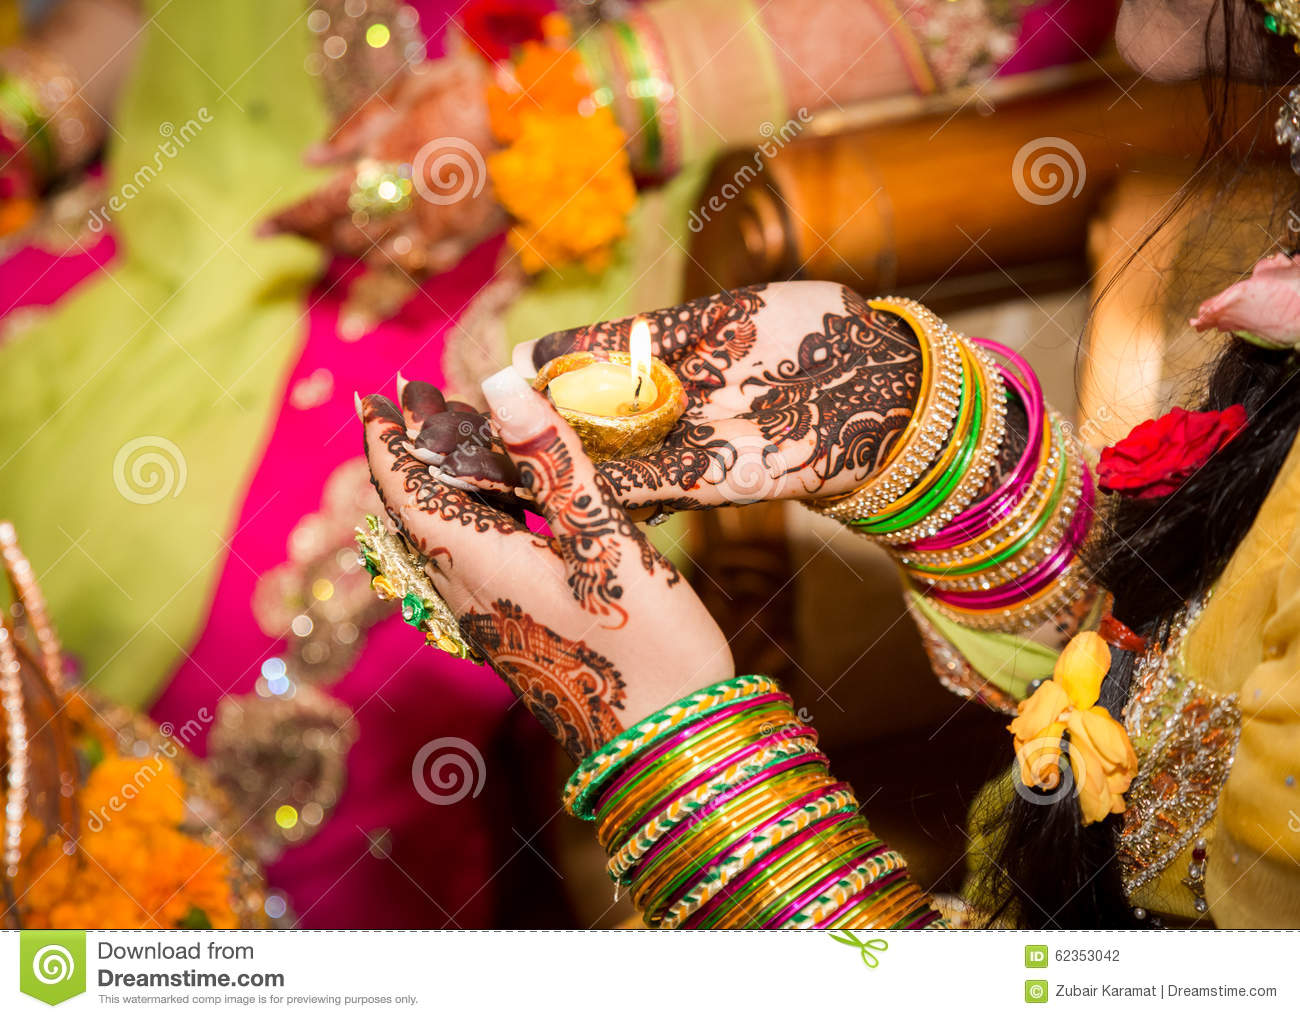 Mehndi Ceremony Clipart : Mehandi design in indian hand royalty free stock image